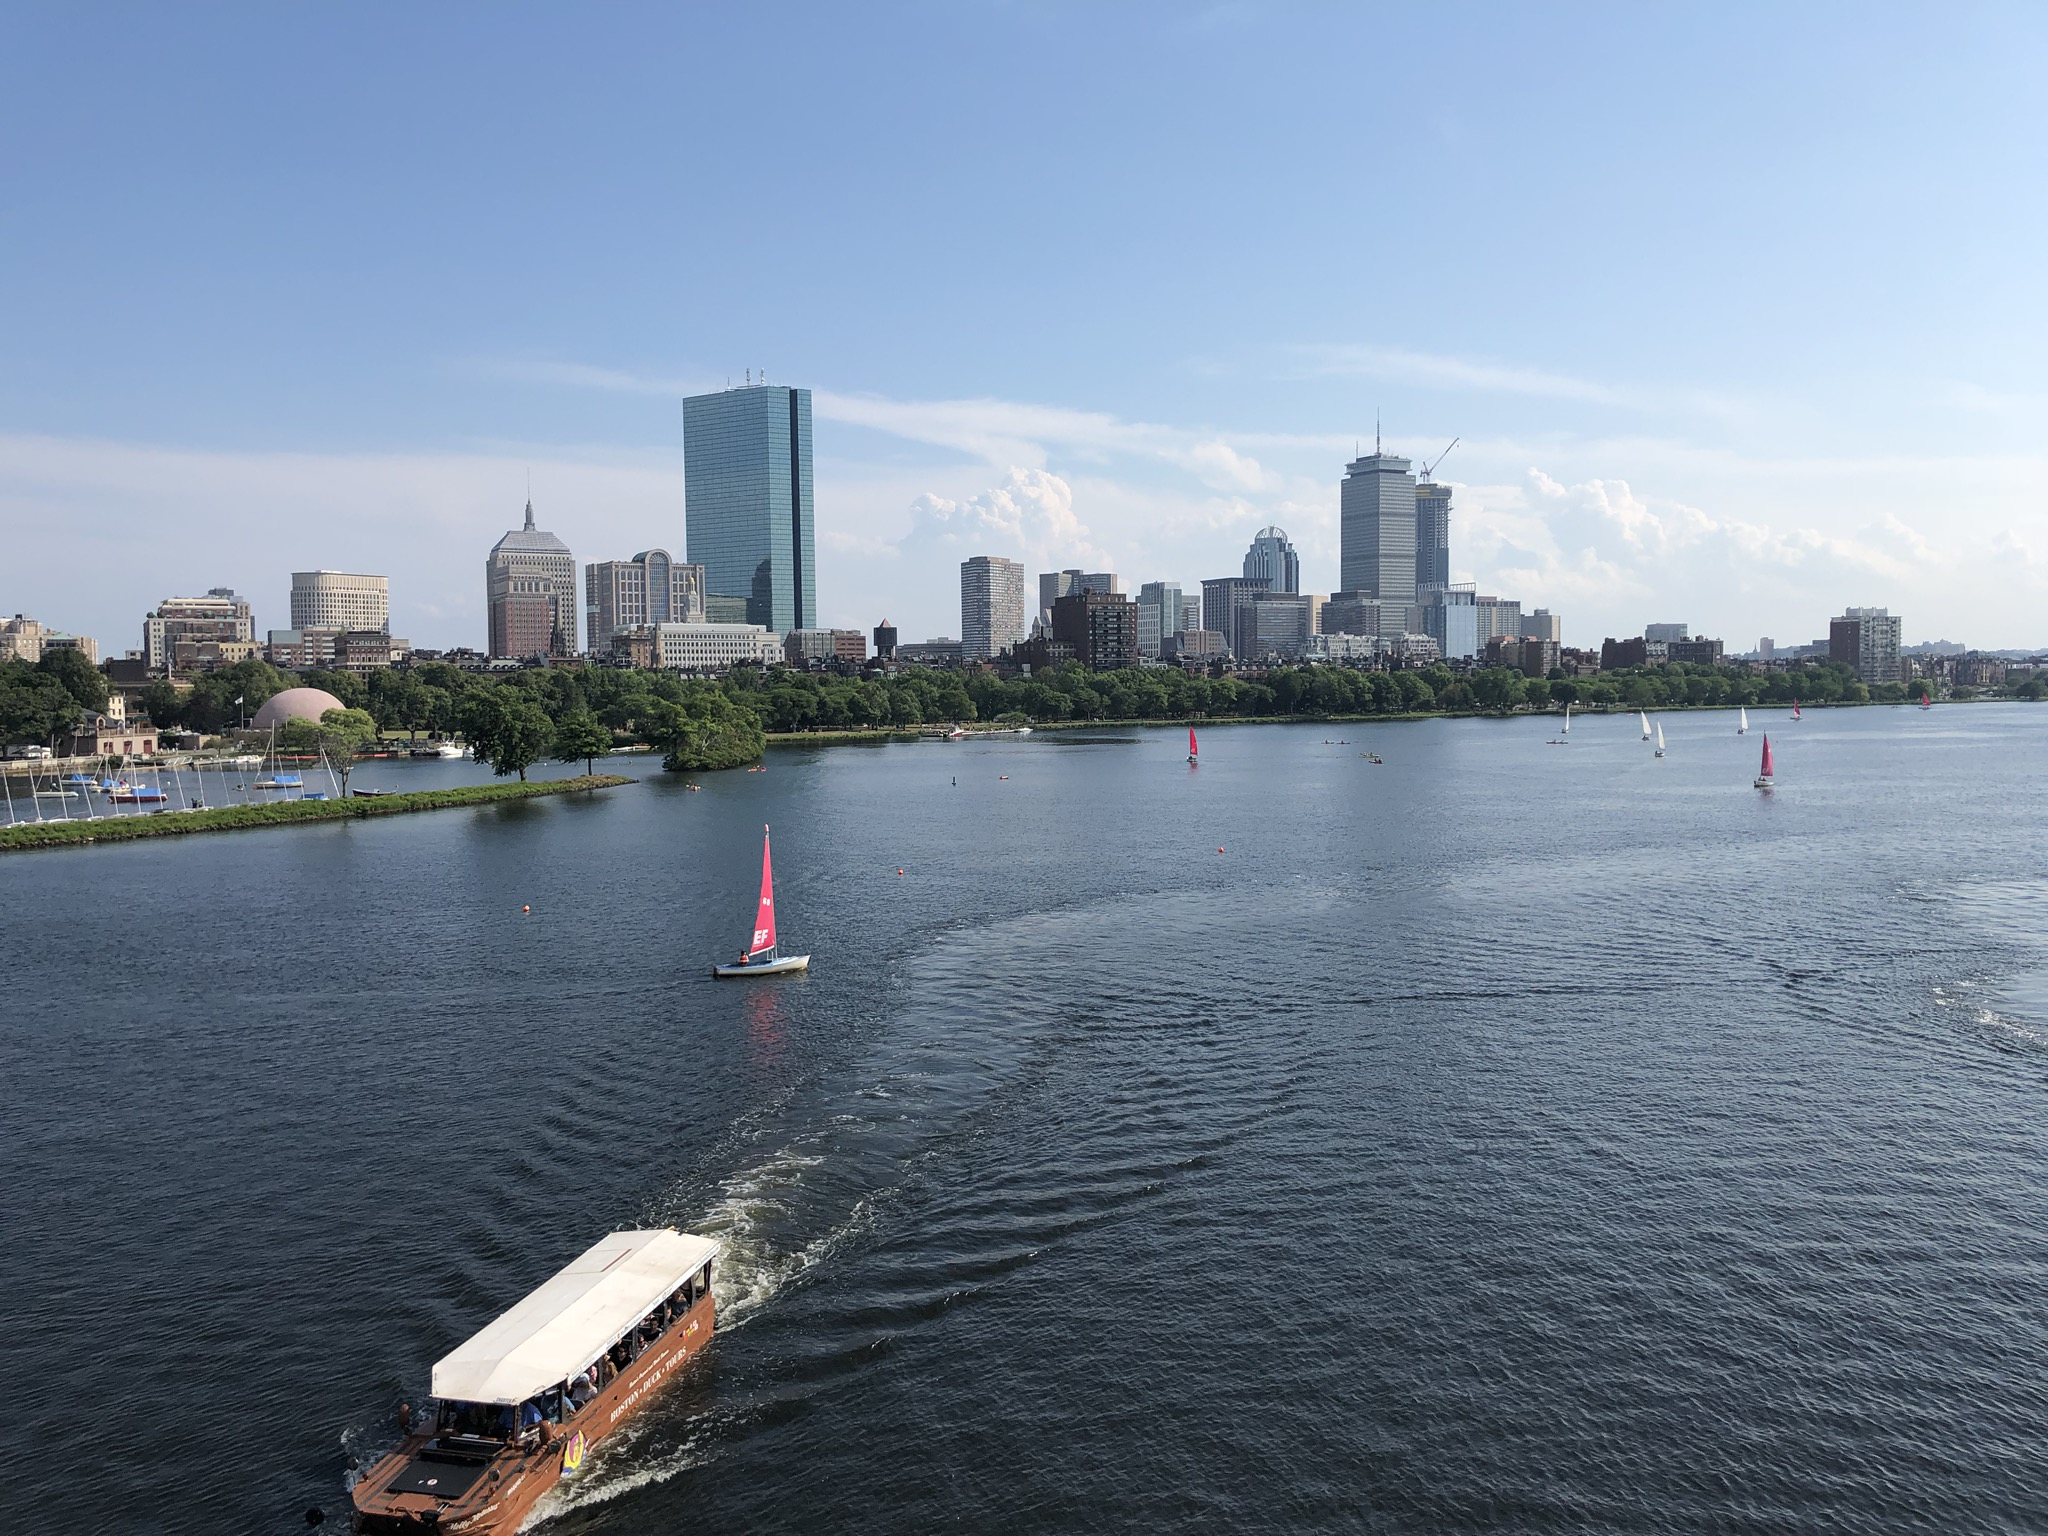 Charles River, Boston MA